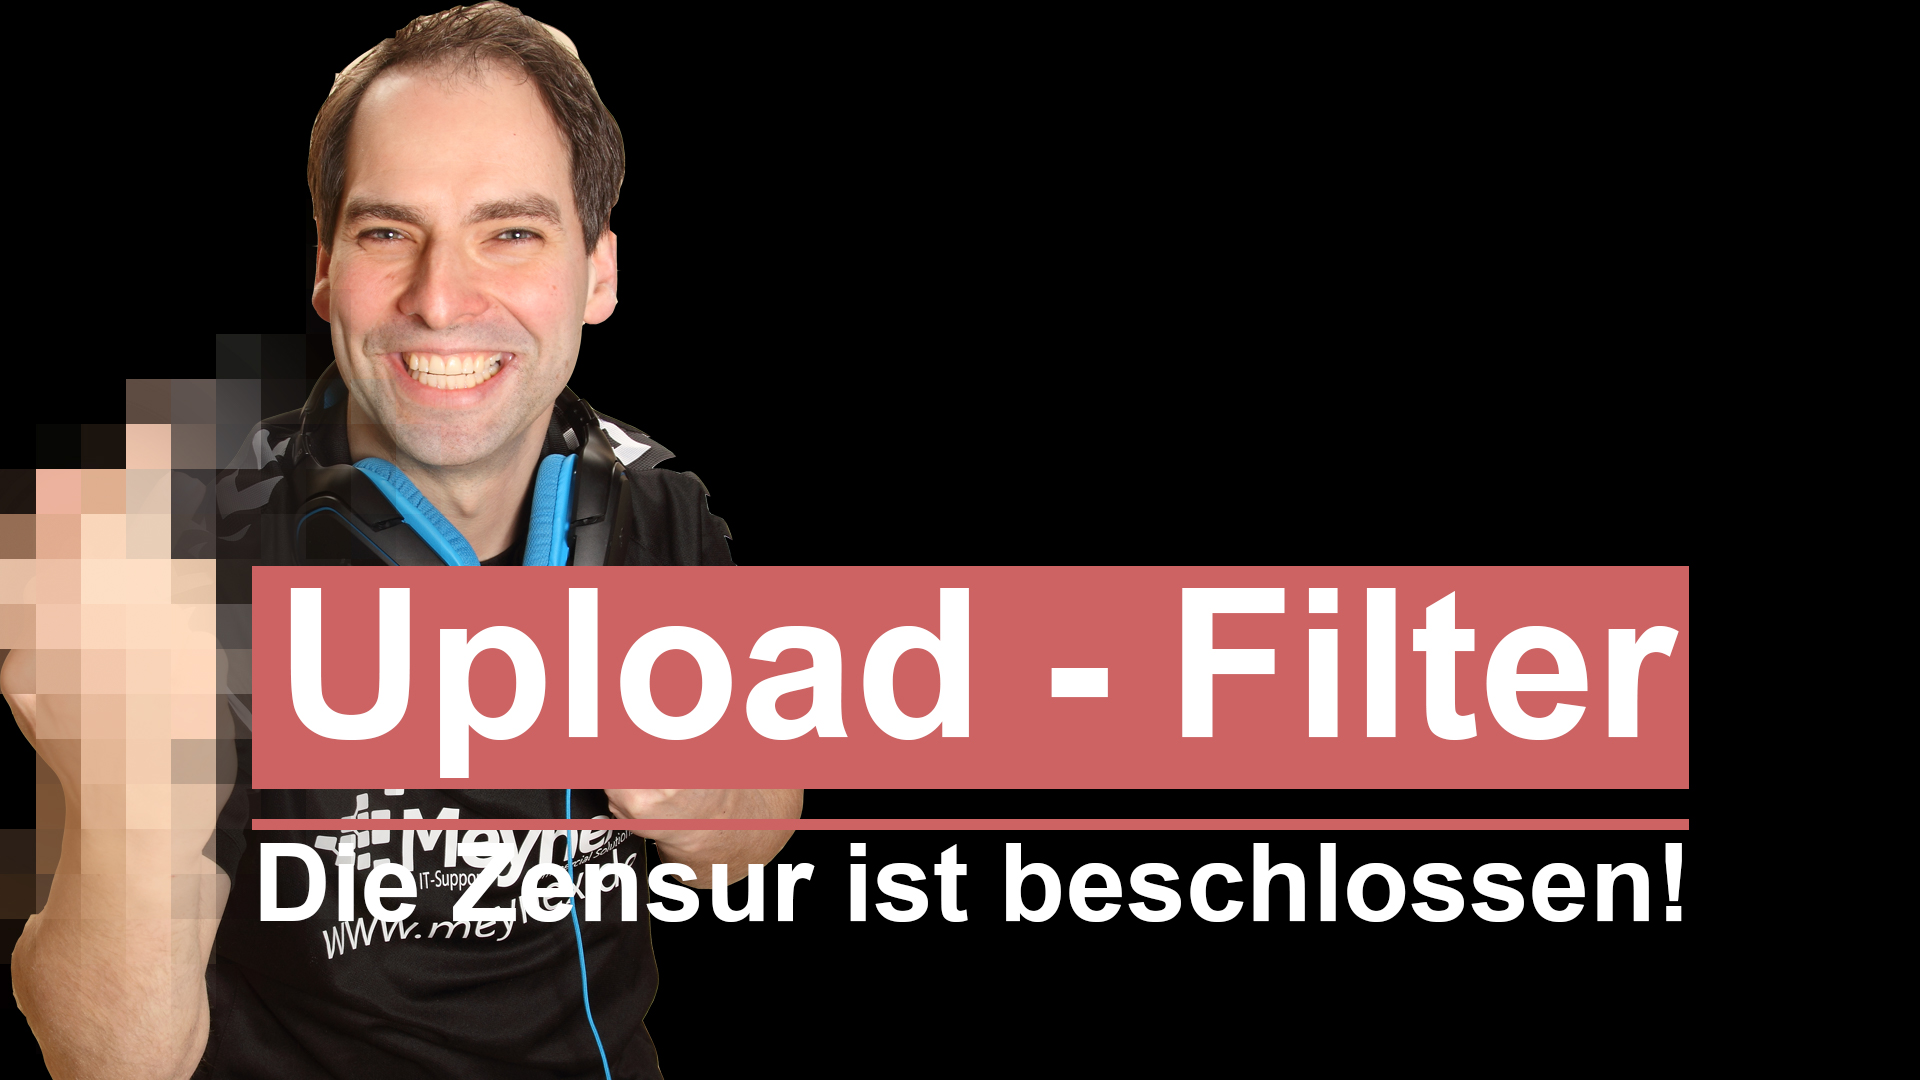 Der Upload - Filter kommt.